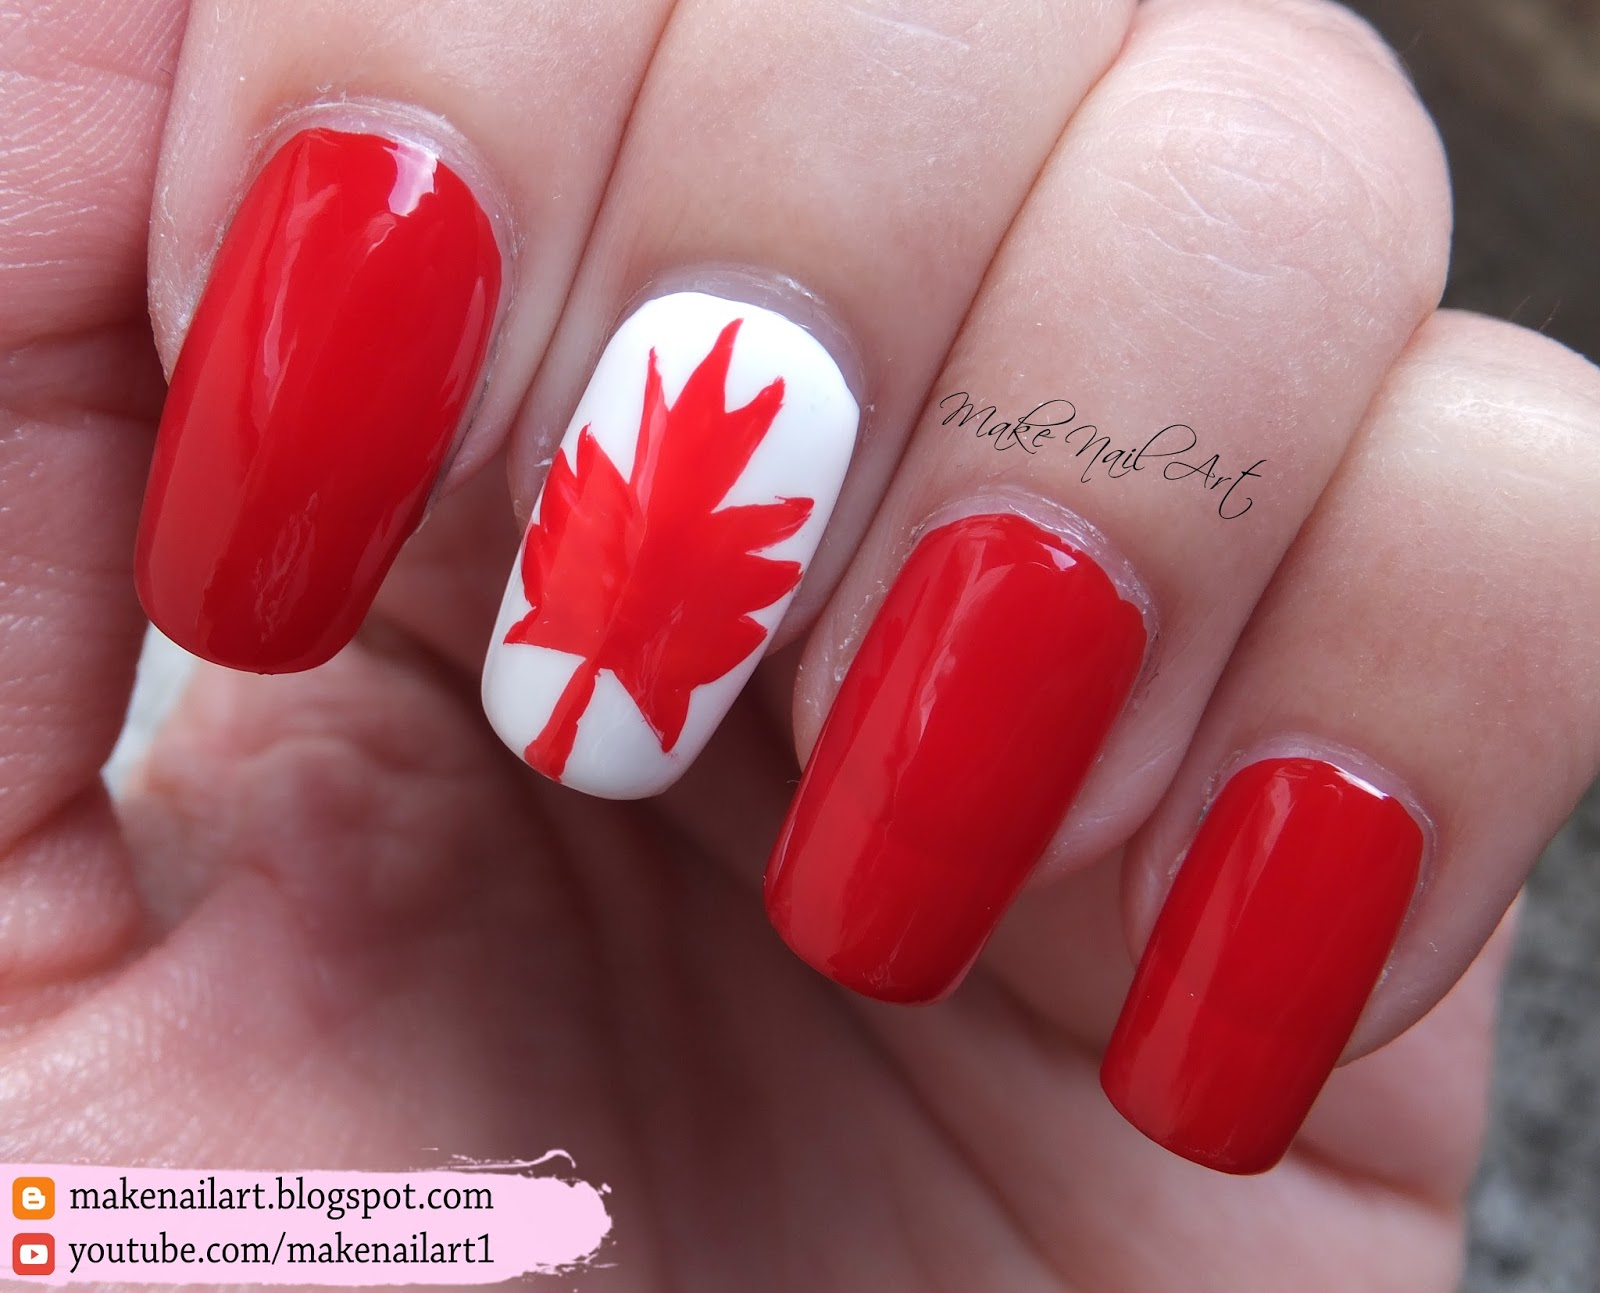 Make Nail Art: Canadian Flag Nail Art Design (31DC2016)